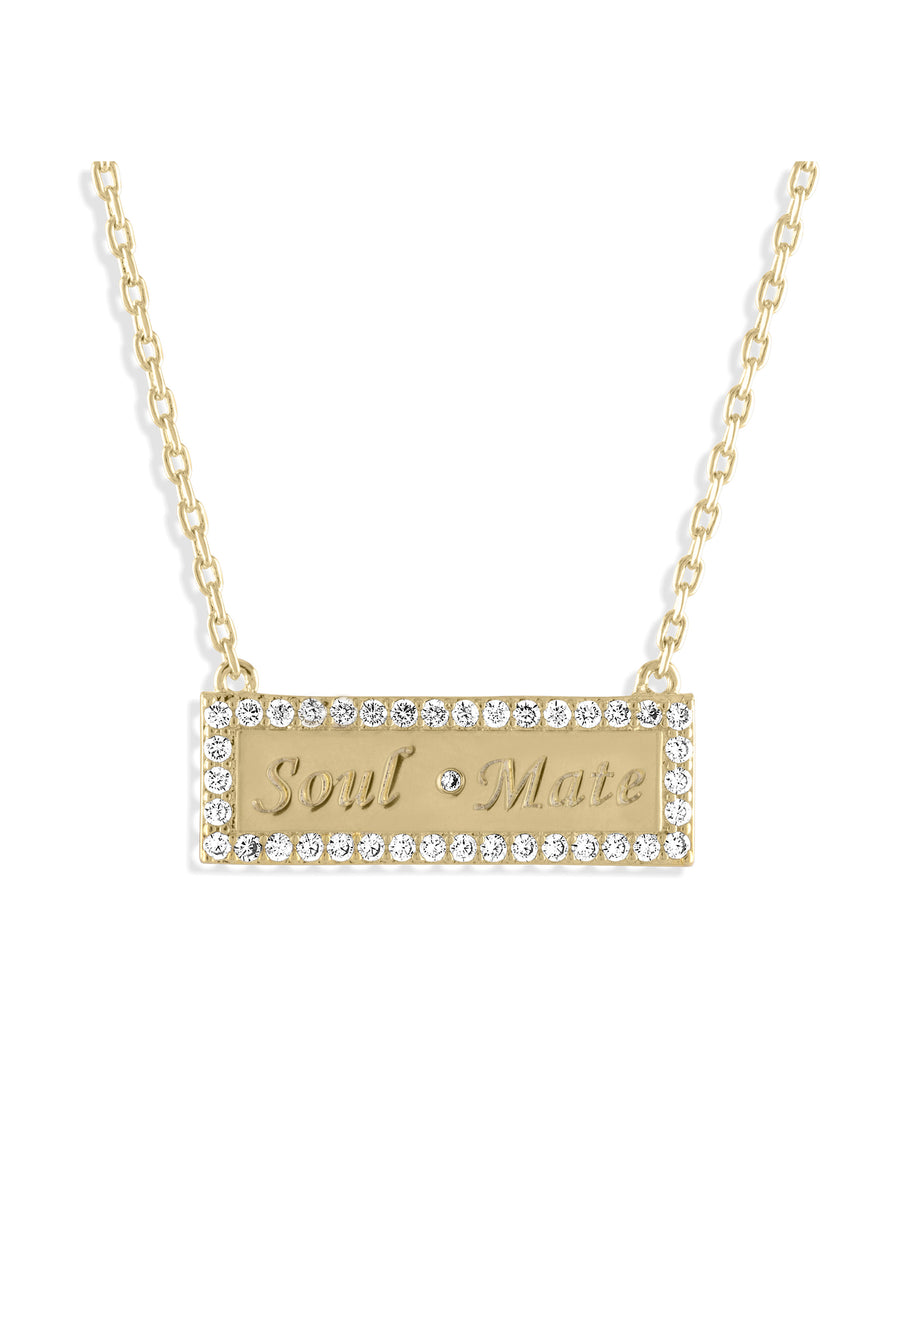 Soul Mate Bar Necklace